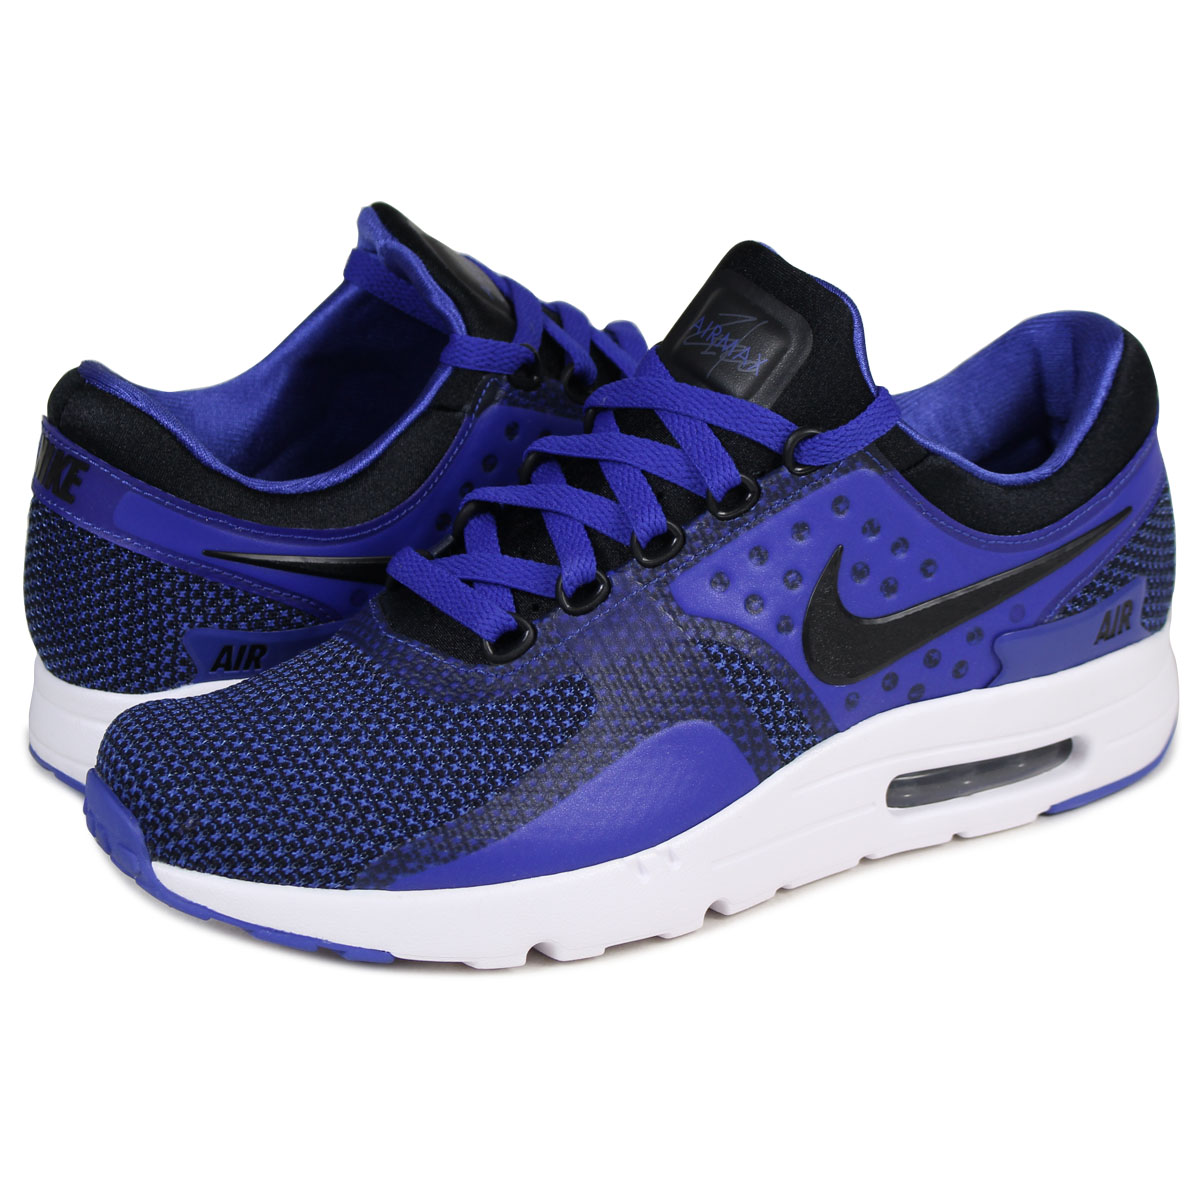 Whats up Sports  NIKE AIR MAX ZERO ESSENTIAL Kie Ney AMAX zero sneakers  876 11ca2128cbce